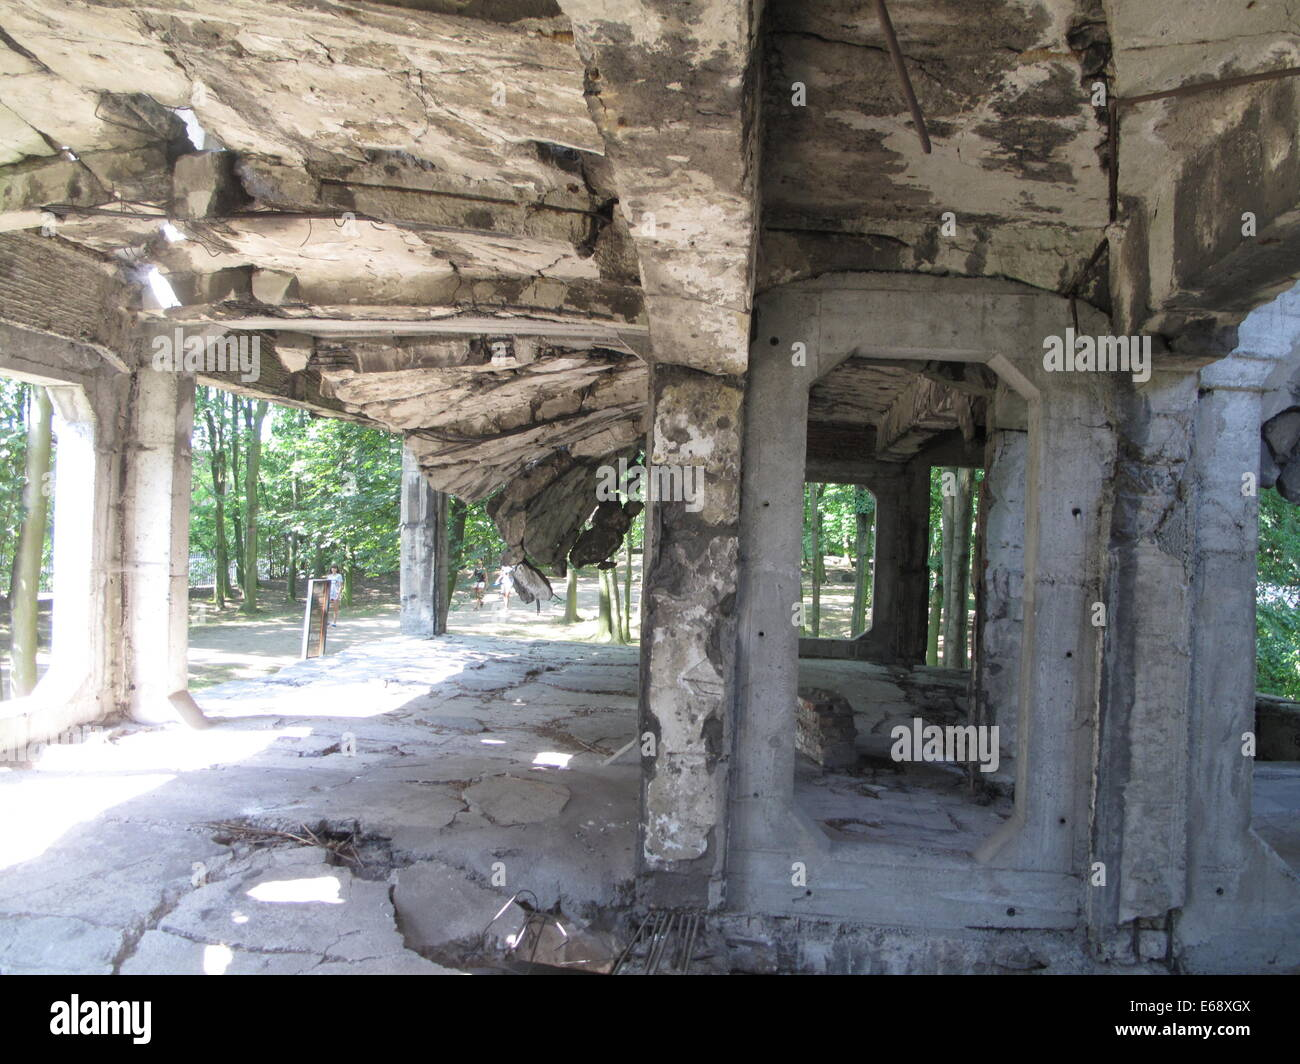 Gdansk, Poland. 29th July, 2014. A ruin is pictured on the Westerplatte peninsula near Gdansk, Poland, 29 July 2014. Stock Photo